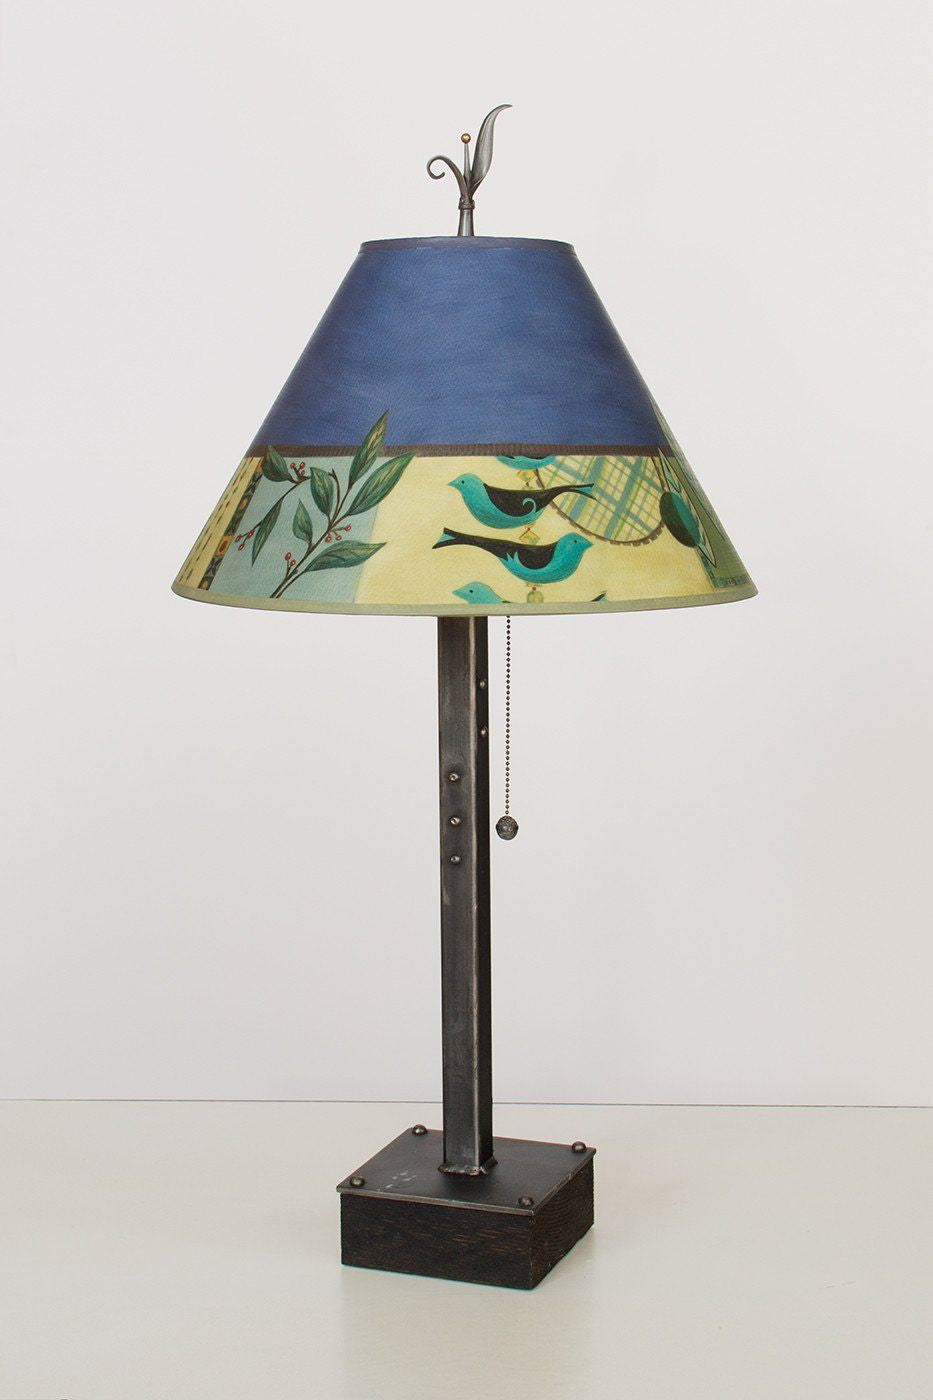 Steel Table Lamp on Wood with Medium Conical Shade in New Capri Periwinkle - Lit